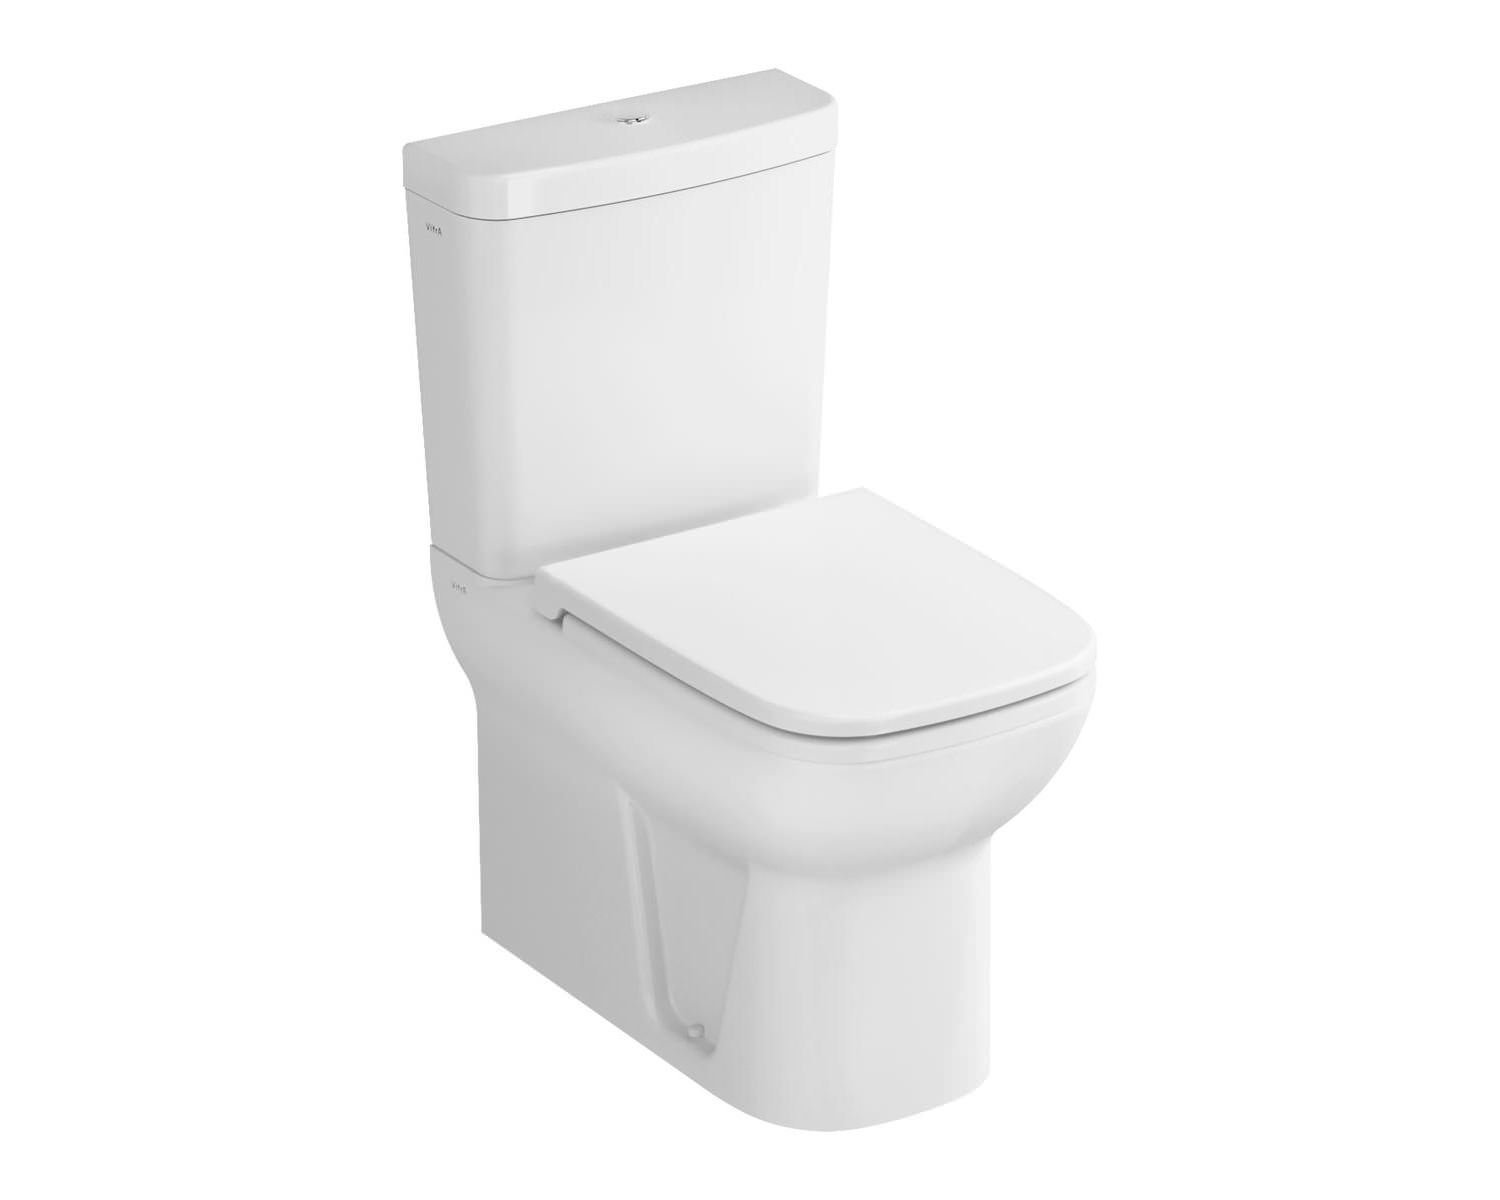 Designer Kitchens And Bathrooms Vitra S20 Close Coupled Btw Wc With Cistern And Seat